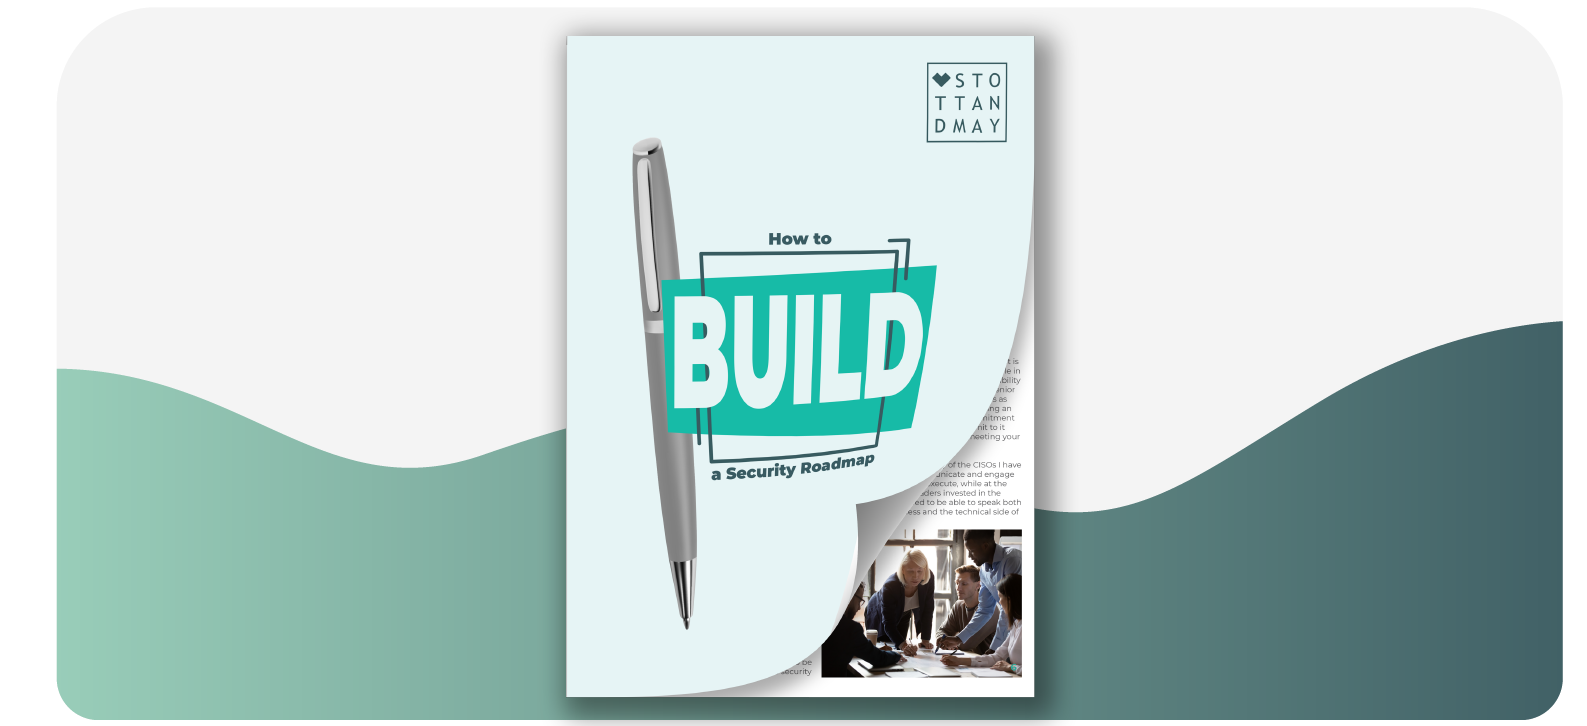 Stott and May How to Build a Security Roadmap report